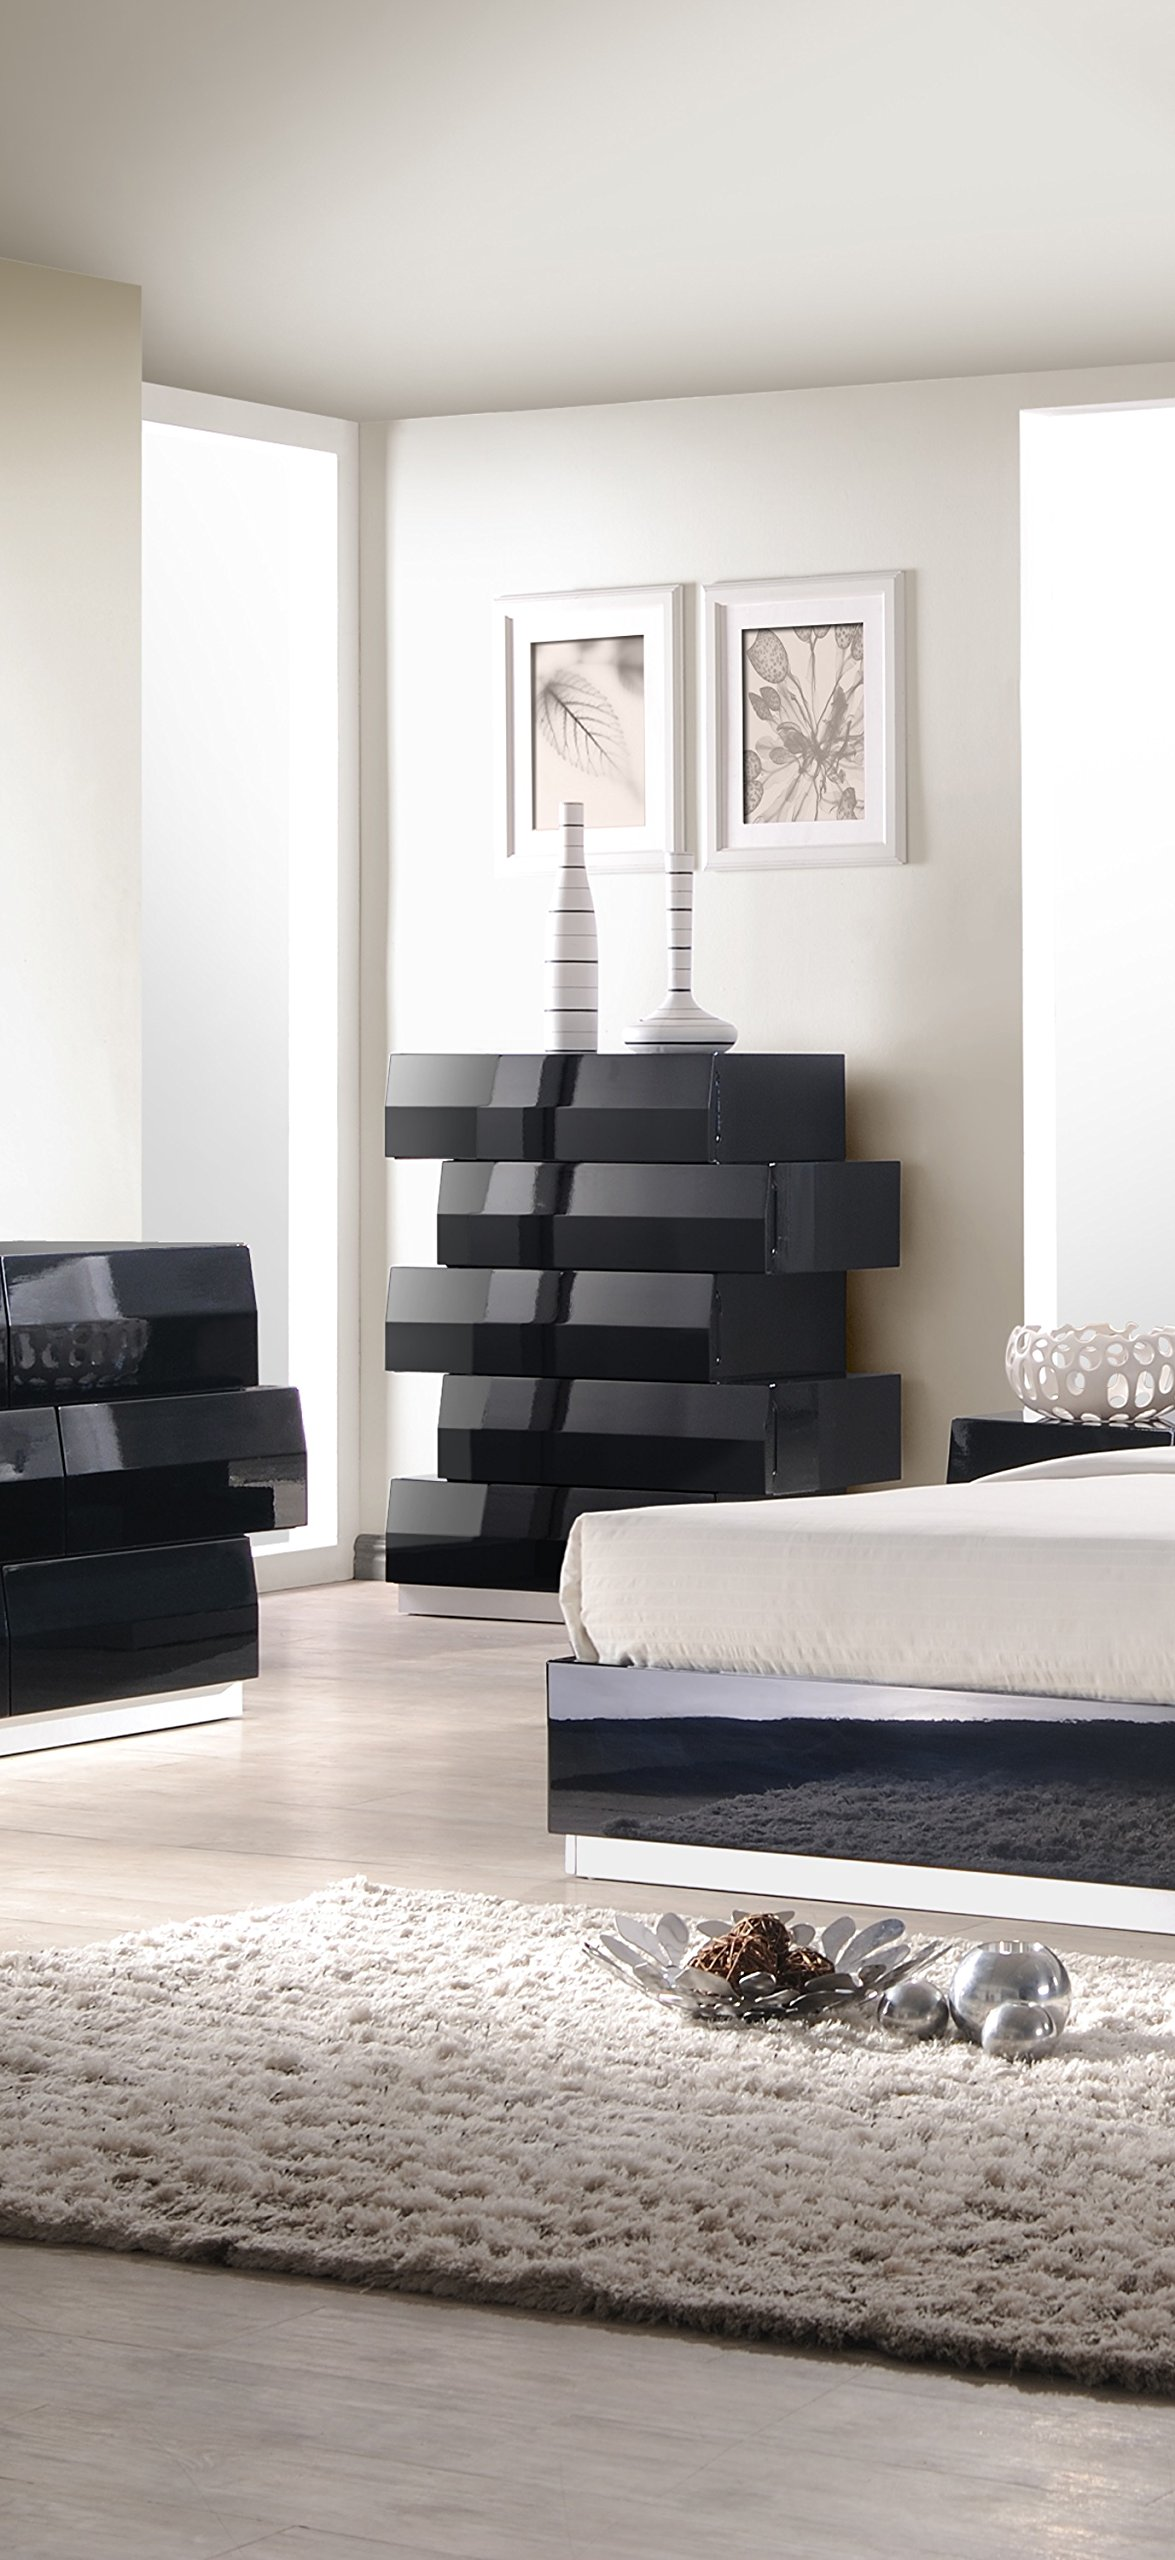 J and M Furniture Milan Chest in Black by J&M Furniture